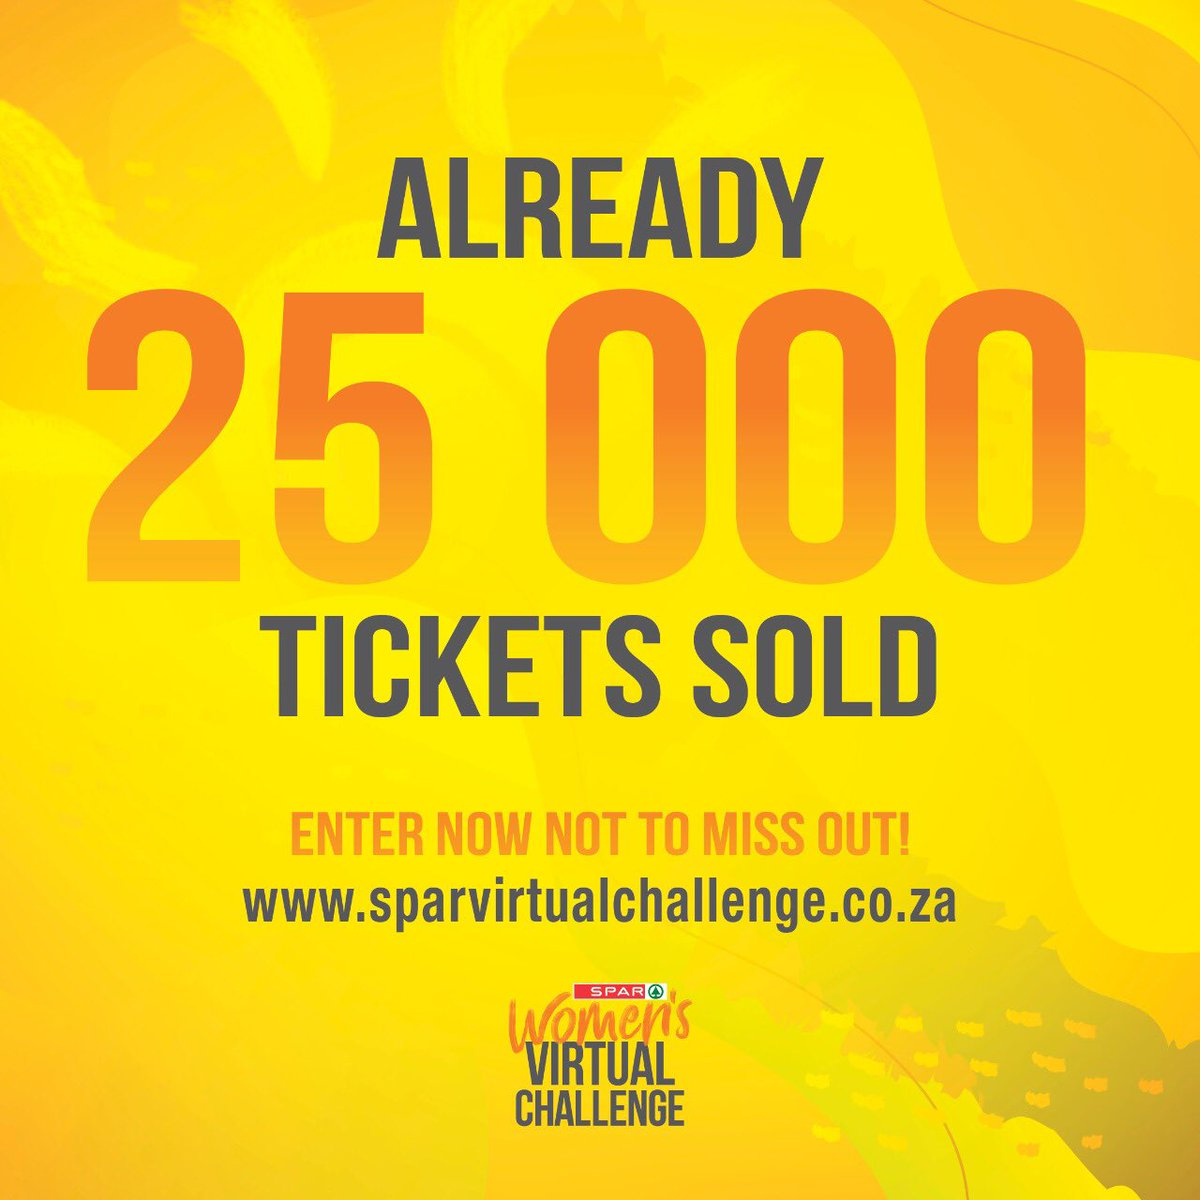 We have sold all 30 000 tickets!   Entries are now closed.  We look forward to sharing the sunshine with you on 26 September!   Remember to share your sunshine with us on the day by posting your virtual run on social media platforms using #BeSunshine & #SPARVirtualChallenge ☀️ https://t.co/6wDLc7m6CF